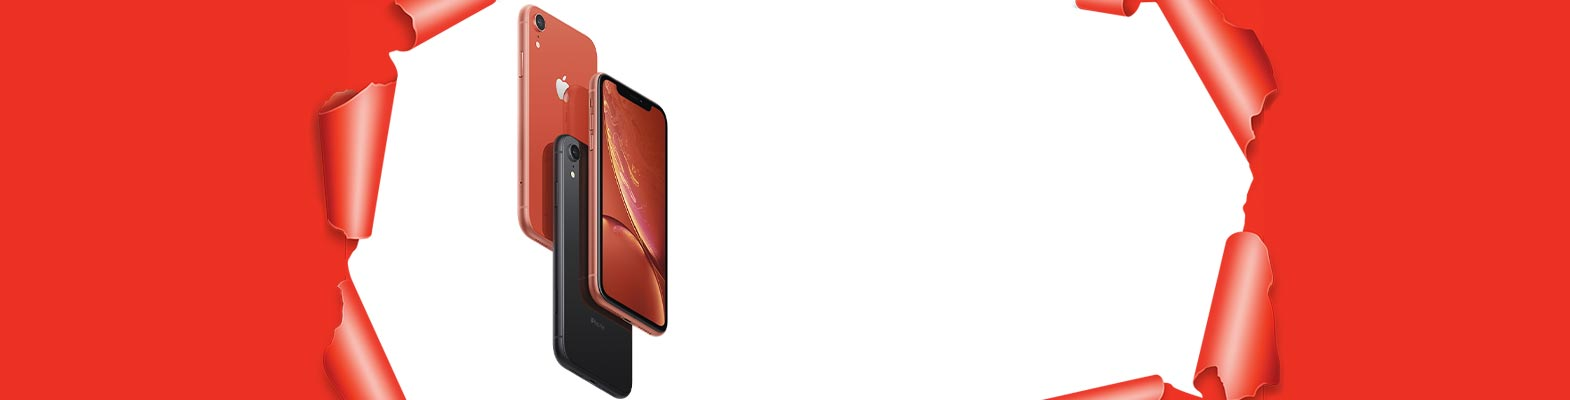 Get a $0 iPhone XR 64GB from Rogers.